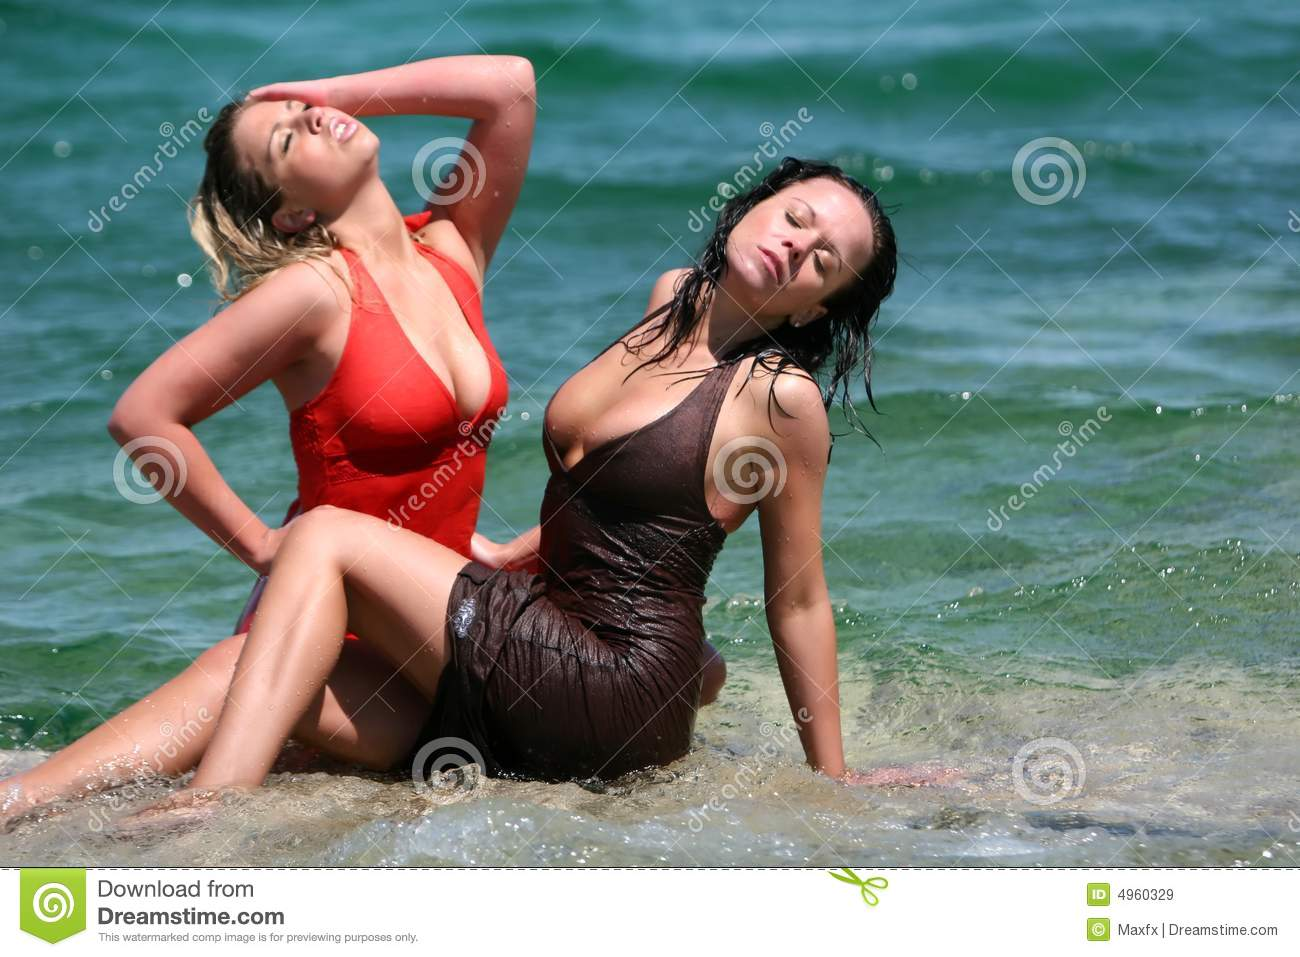 Sexy girls in water